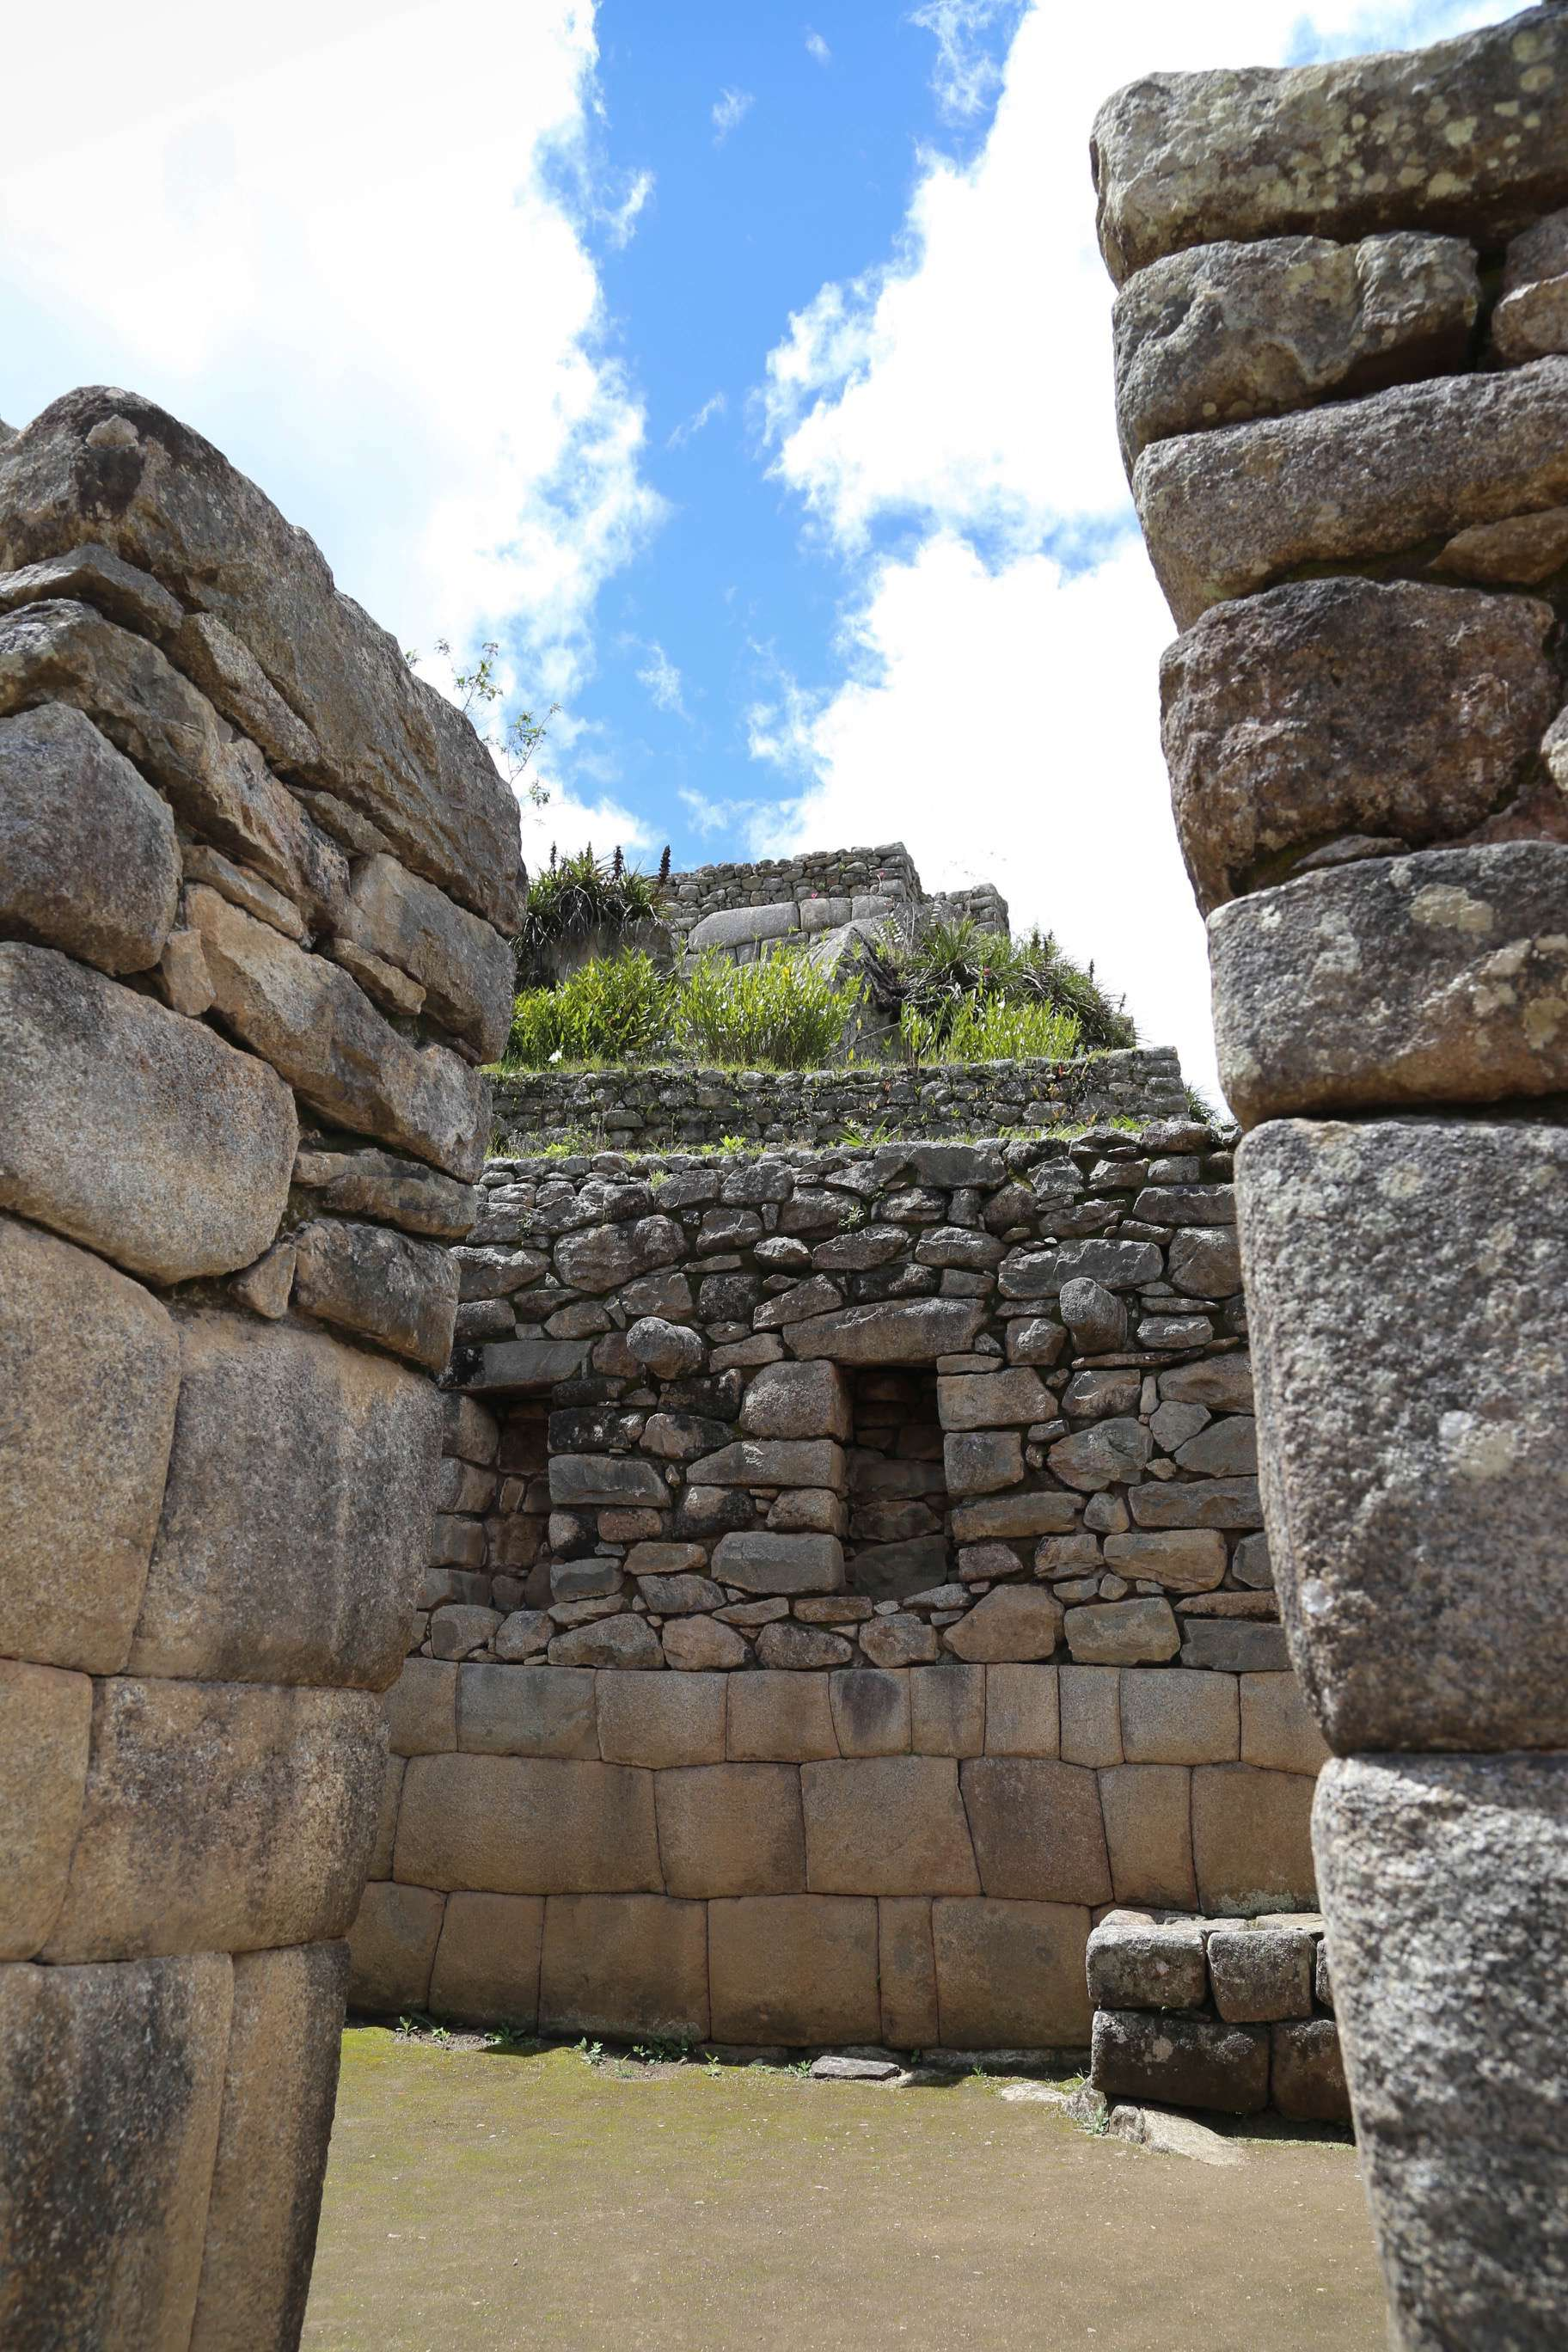 Some criticize the amount of restoration that has been done at Machu Picchu, showing the contrast with the Inca's precision and the restorer's handiwork.